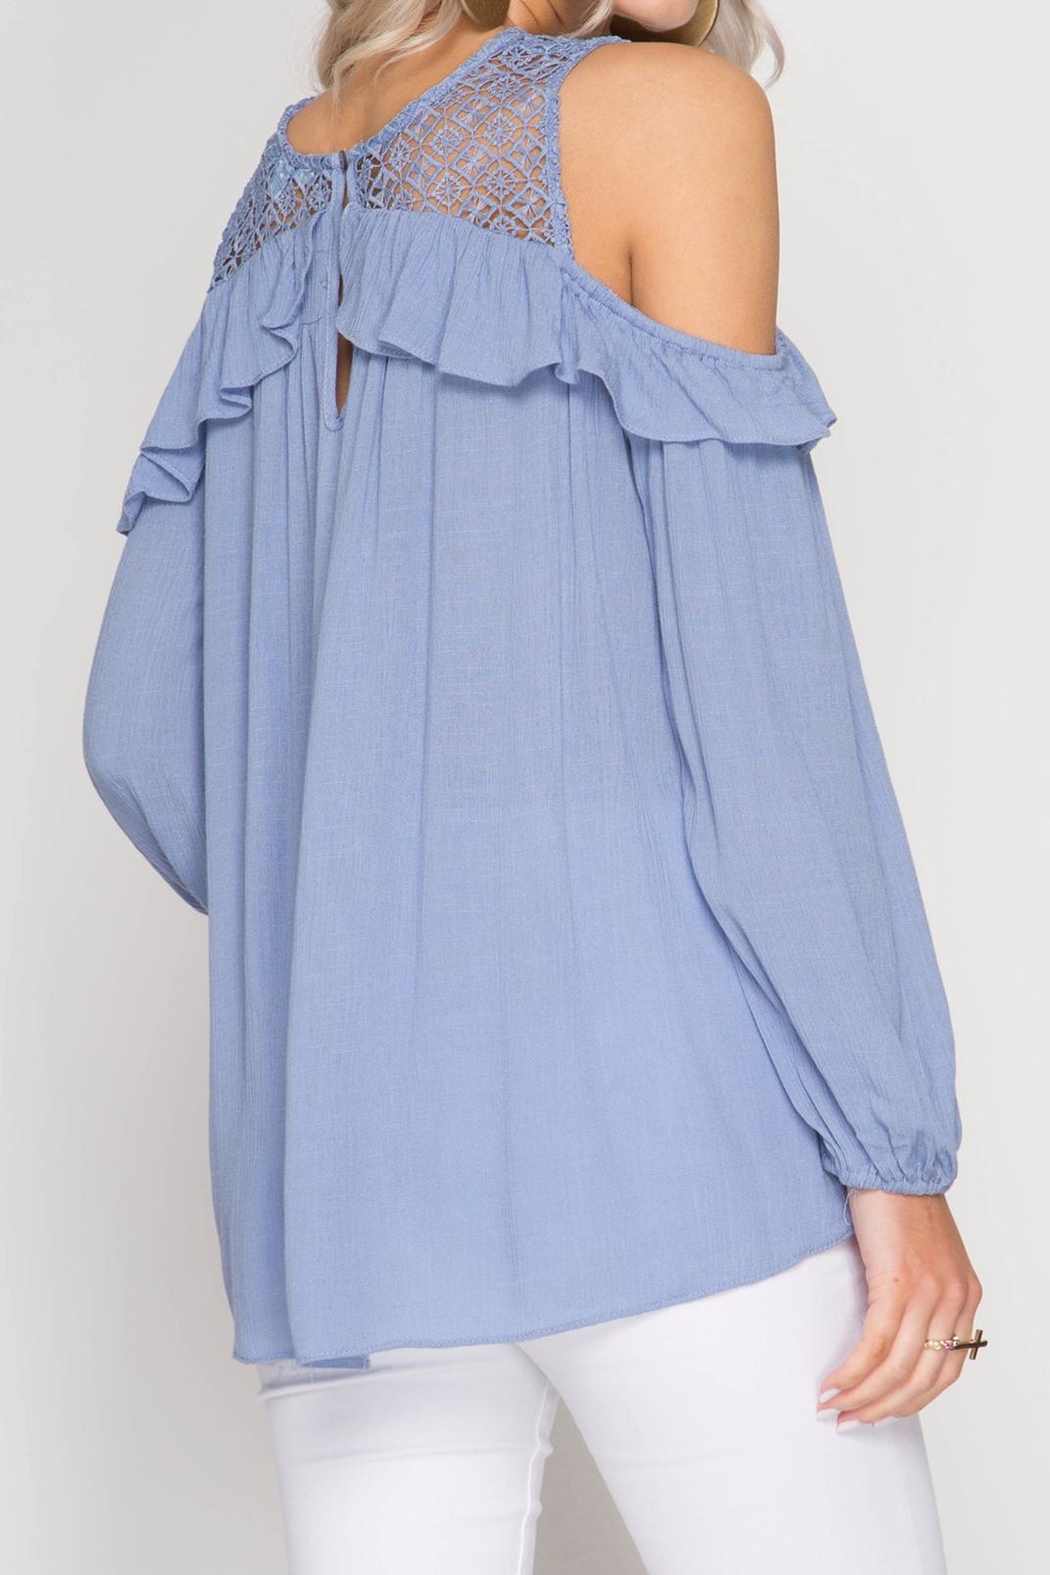 She + Sky Lace And Ruffle Top - Back Cropped Image